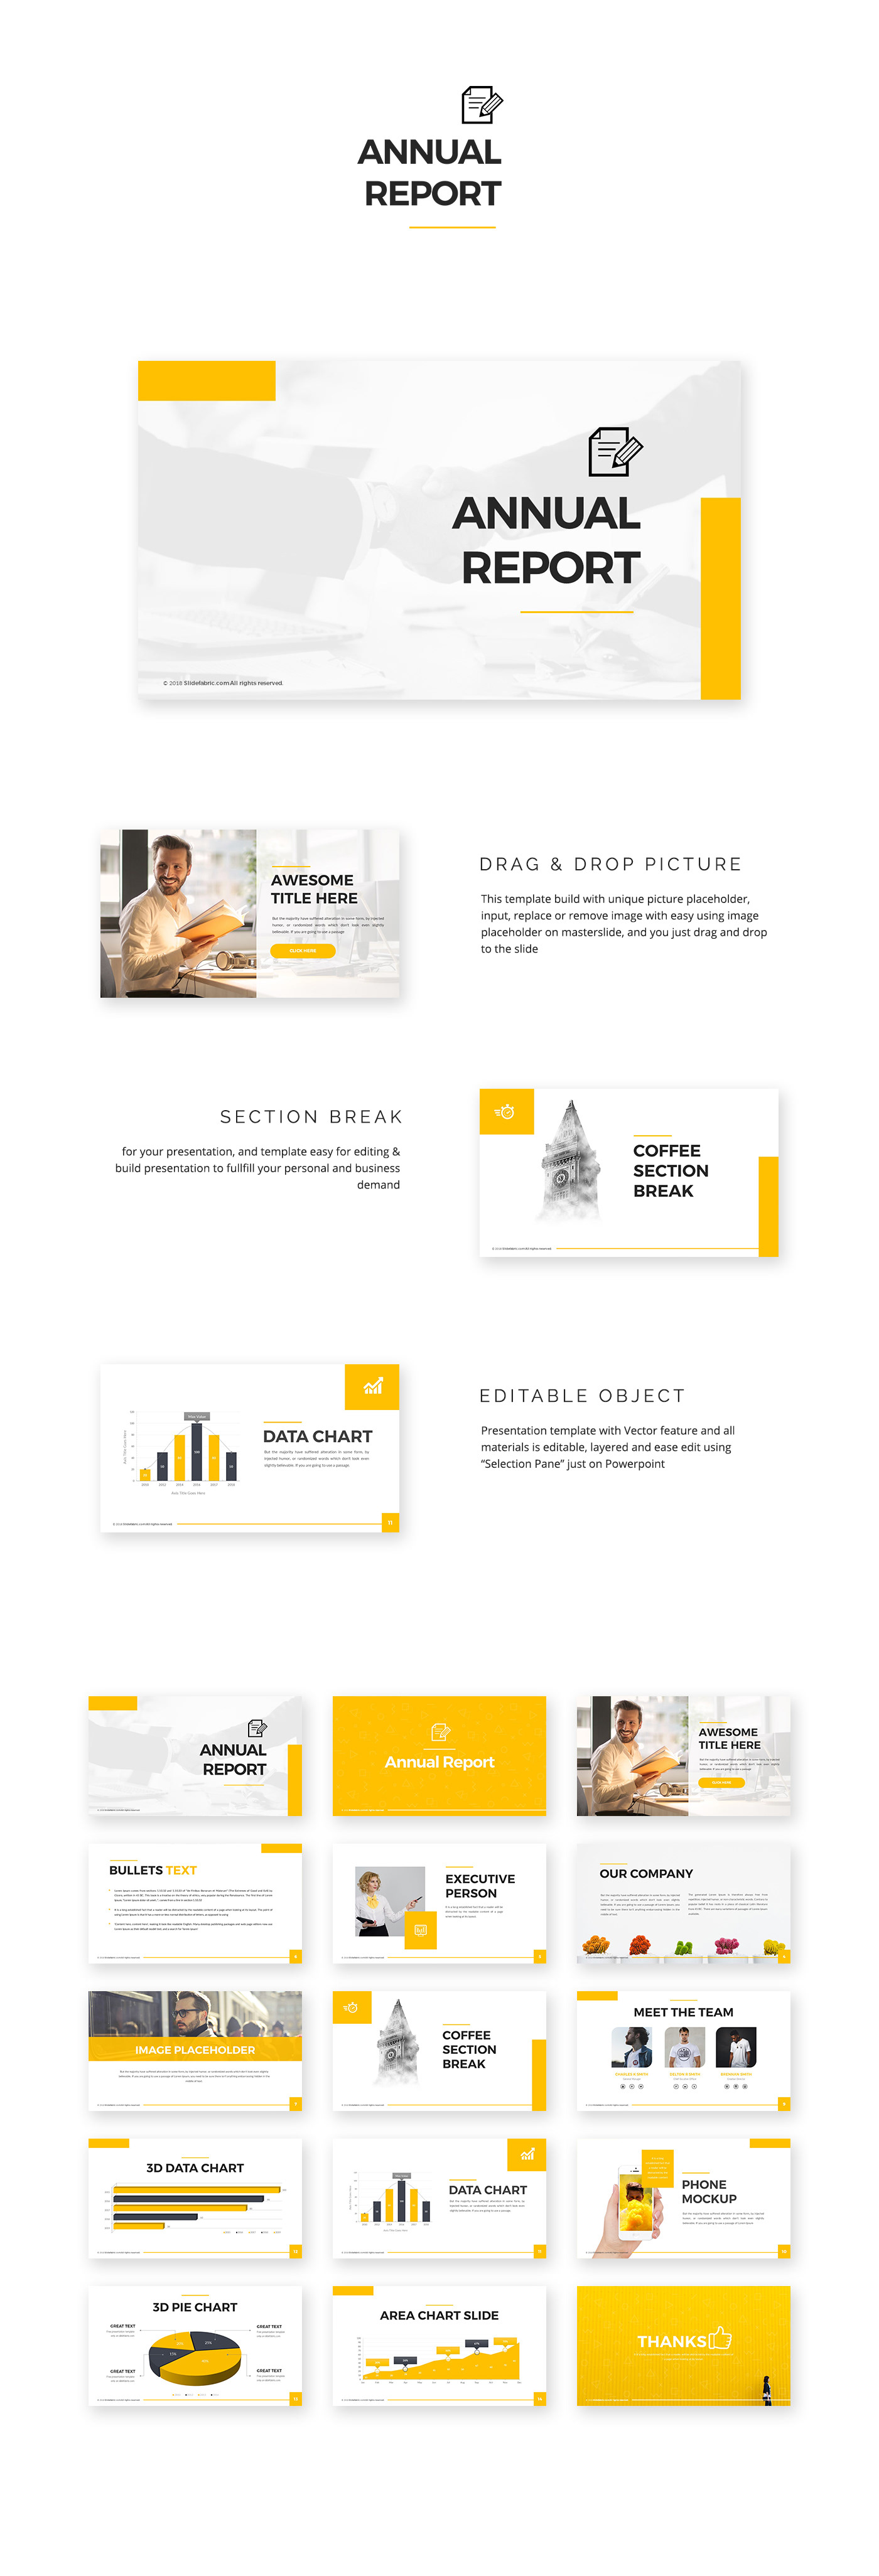 free powerpoint Free Powerpoint Template annual report free themes powerpoint infographic chart slide PPT free pptx